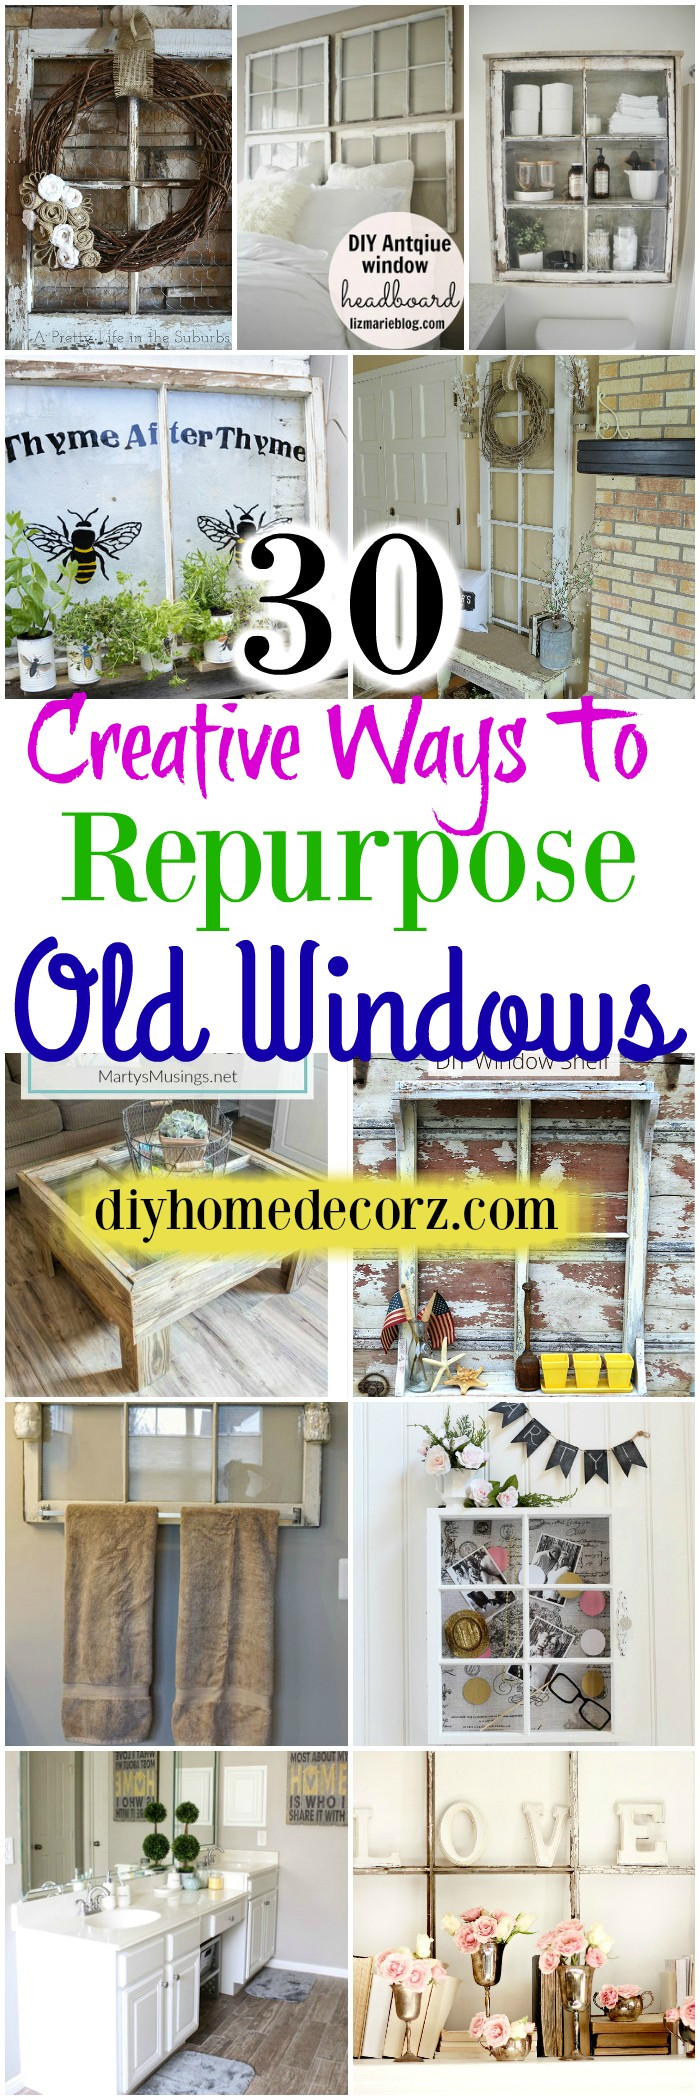 30 Creative Ways to Repurpose Old Windows